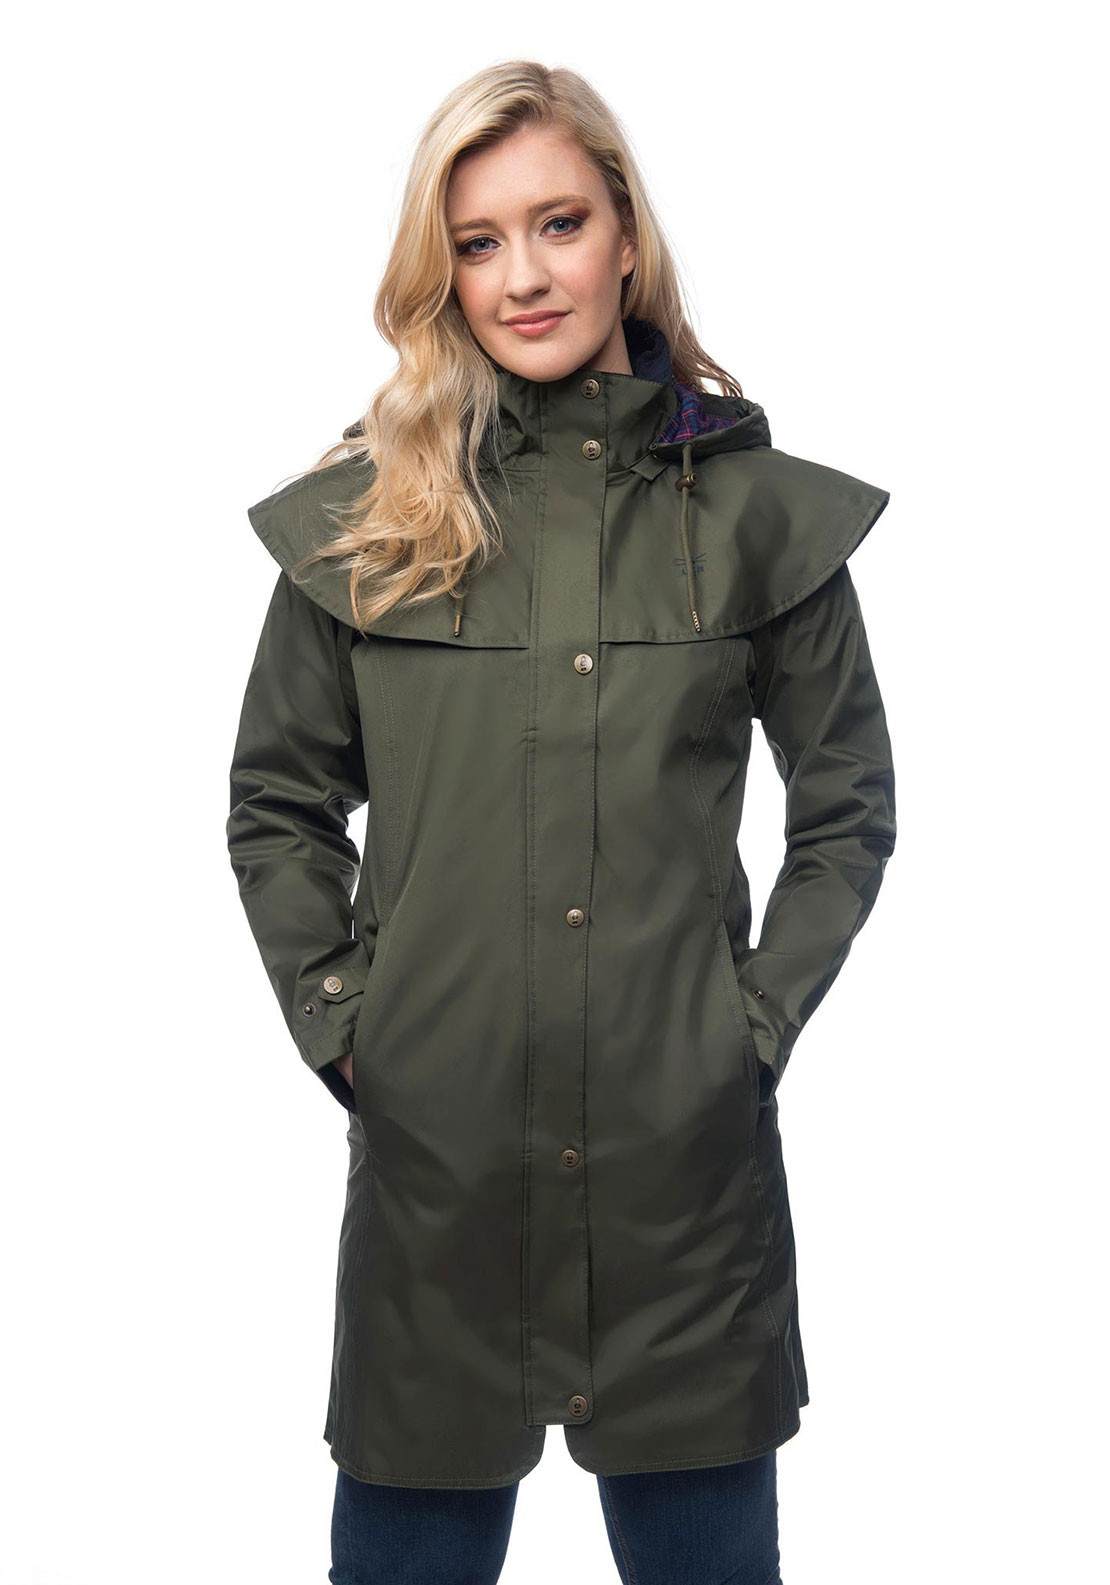 Lighthouse Outrider Hooded Raincoat, Fern Green